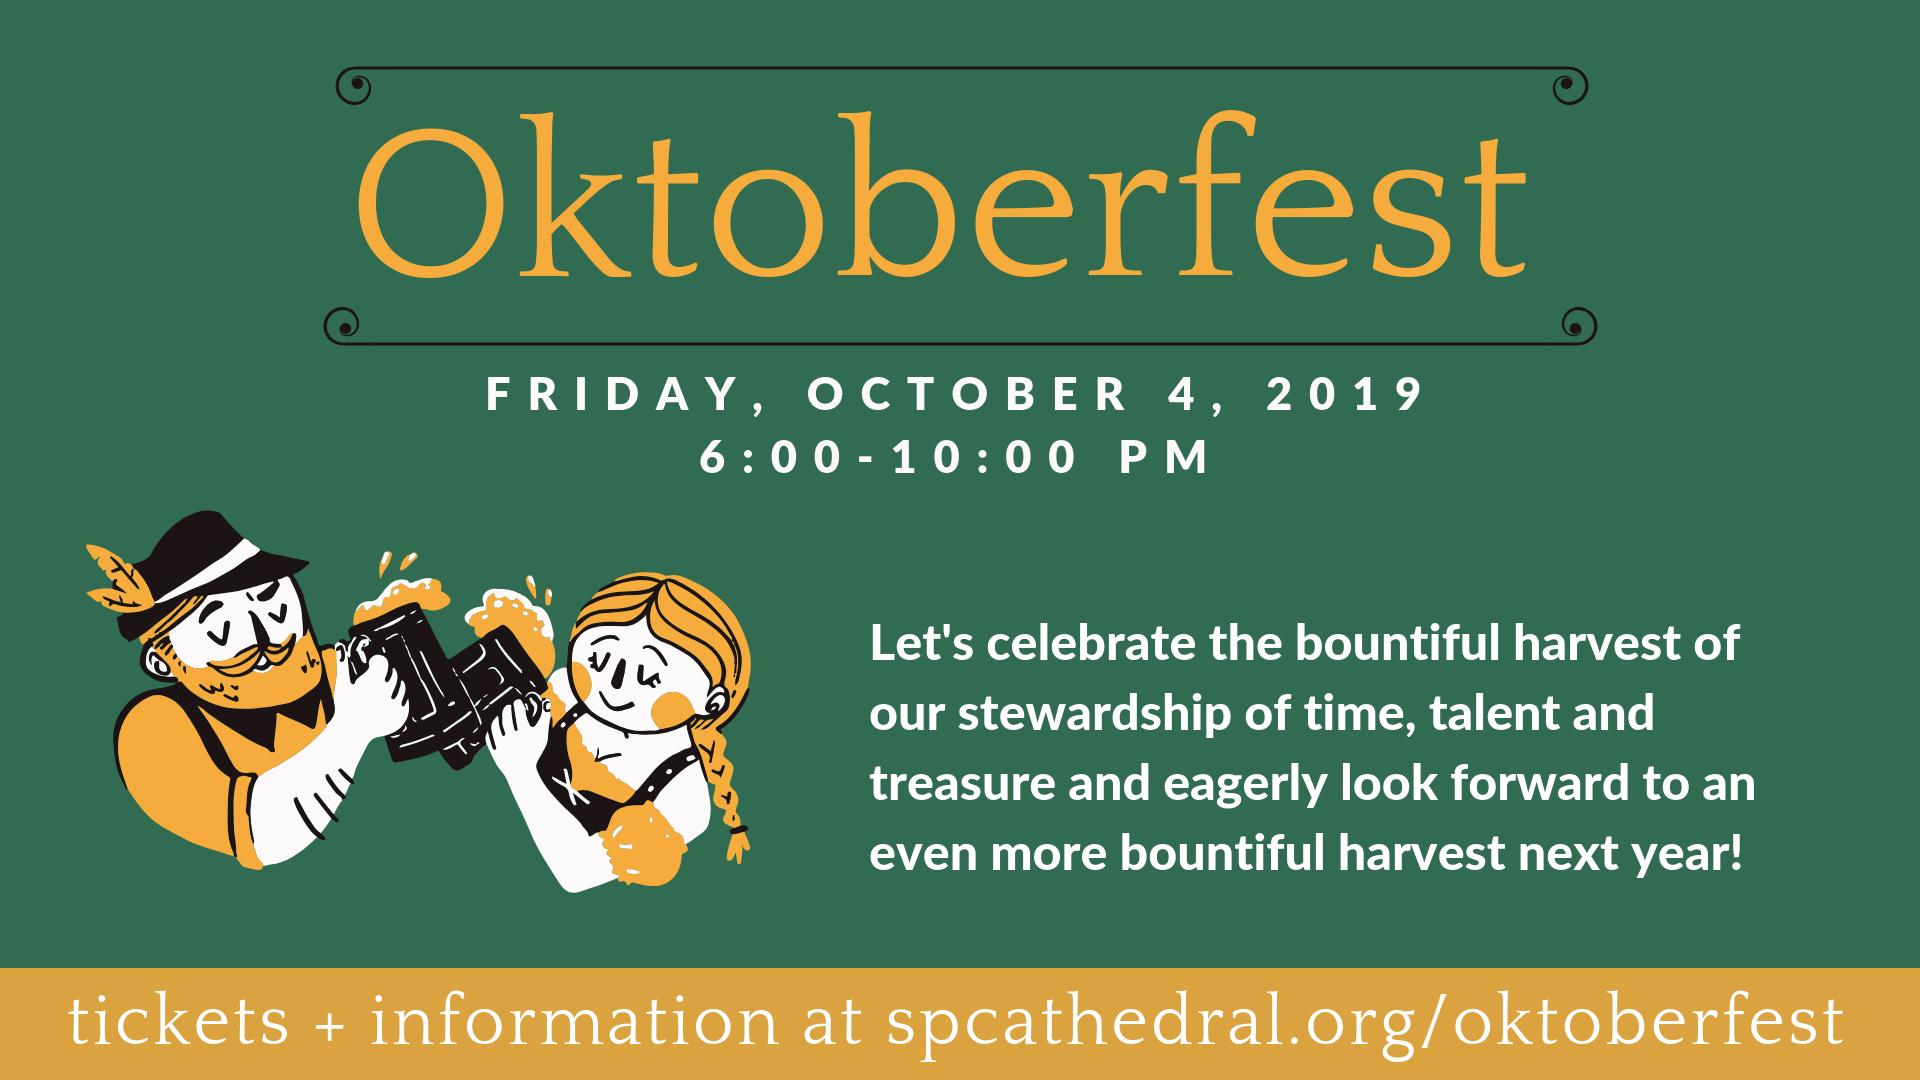 This event is free, but we need an accurate head count for food and drink. Please get your tickets at spcathedral.org/oktoberfest (This event is 21+ only. Child care is available for babies - age 11 with registration.)